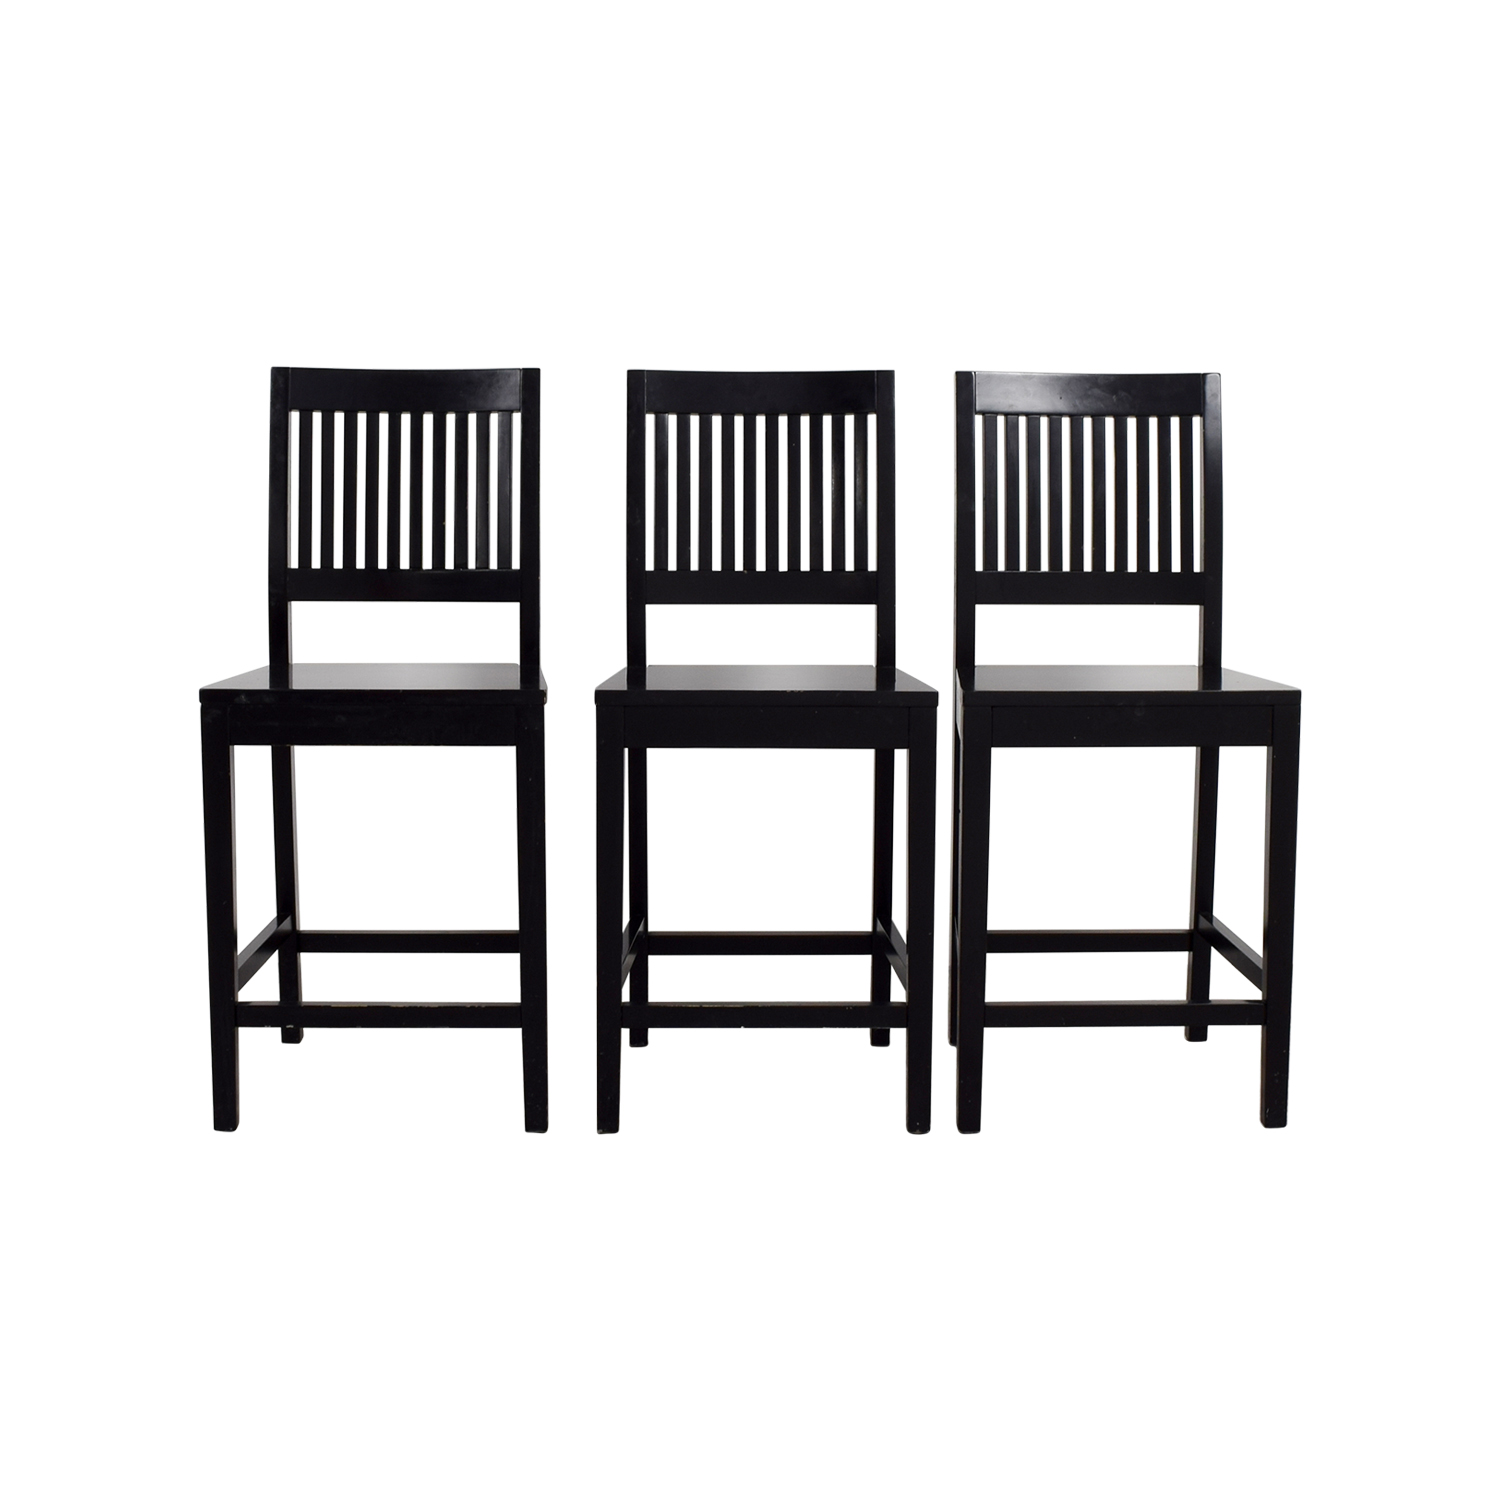 chairs crate and barrel chair office depot 89 off counter height